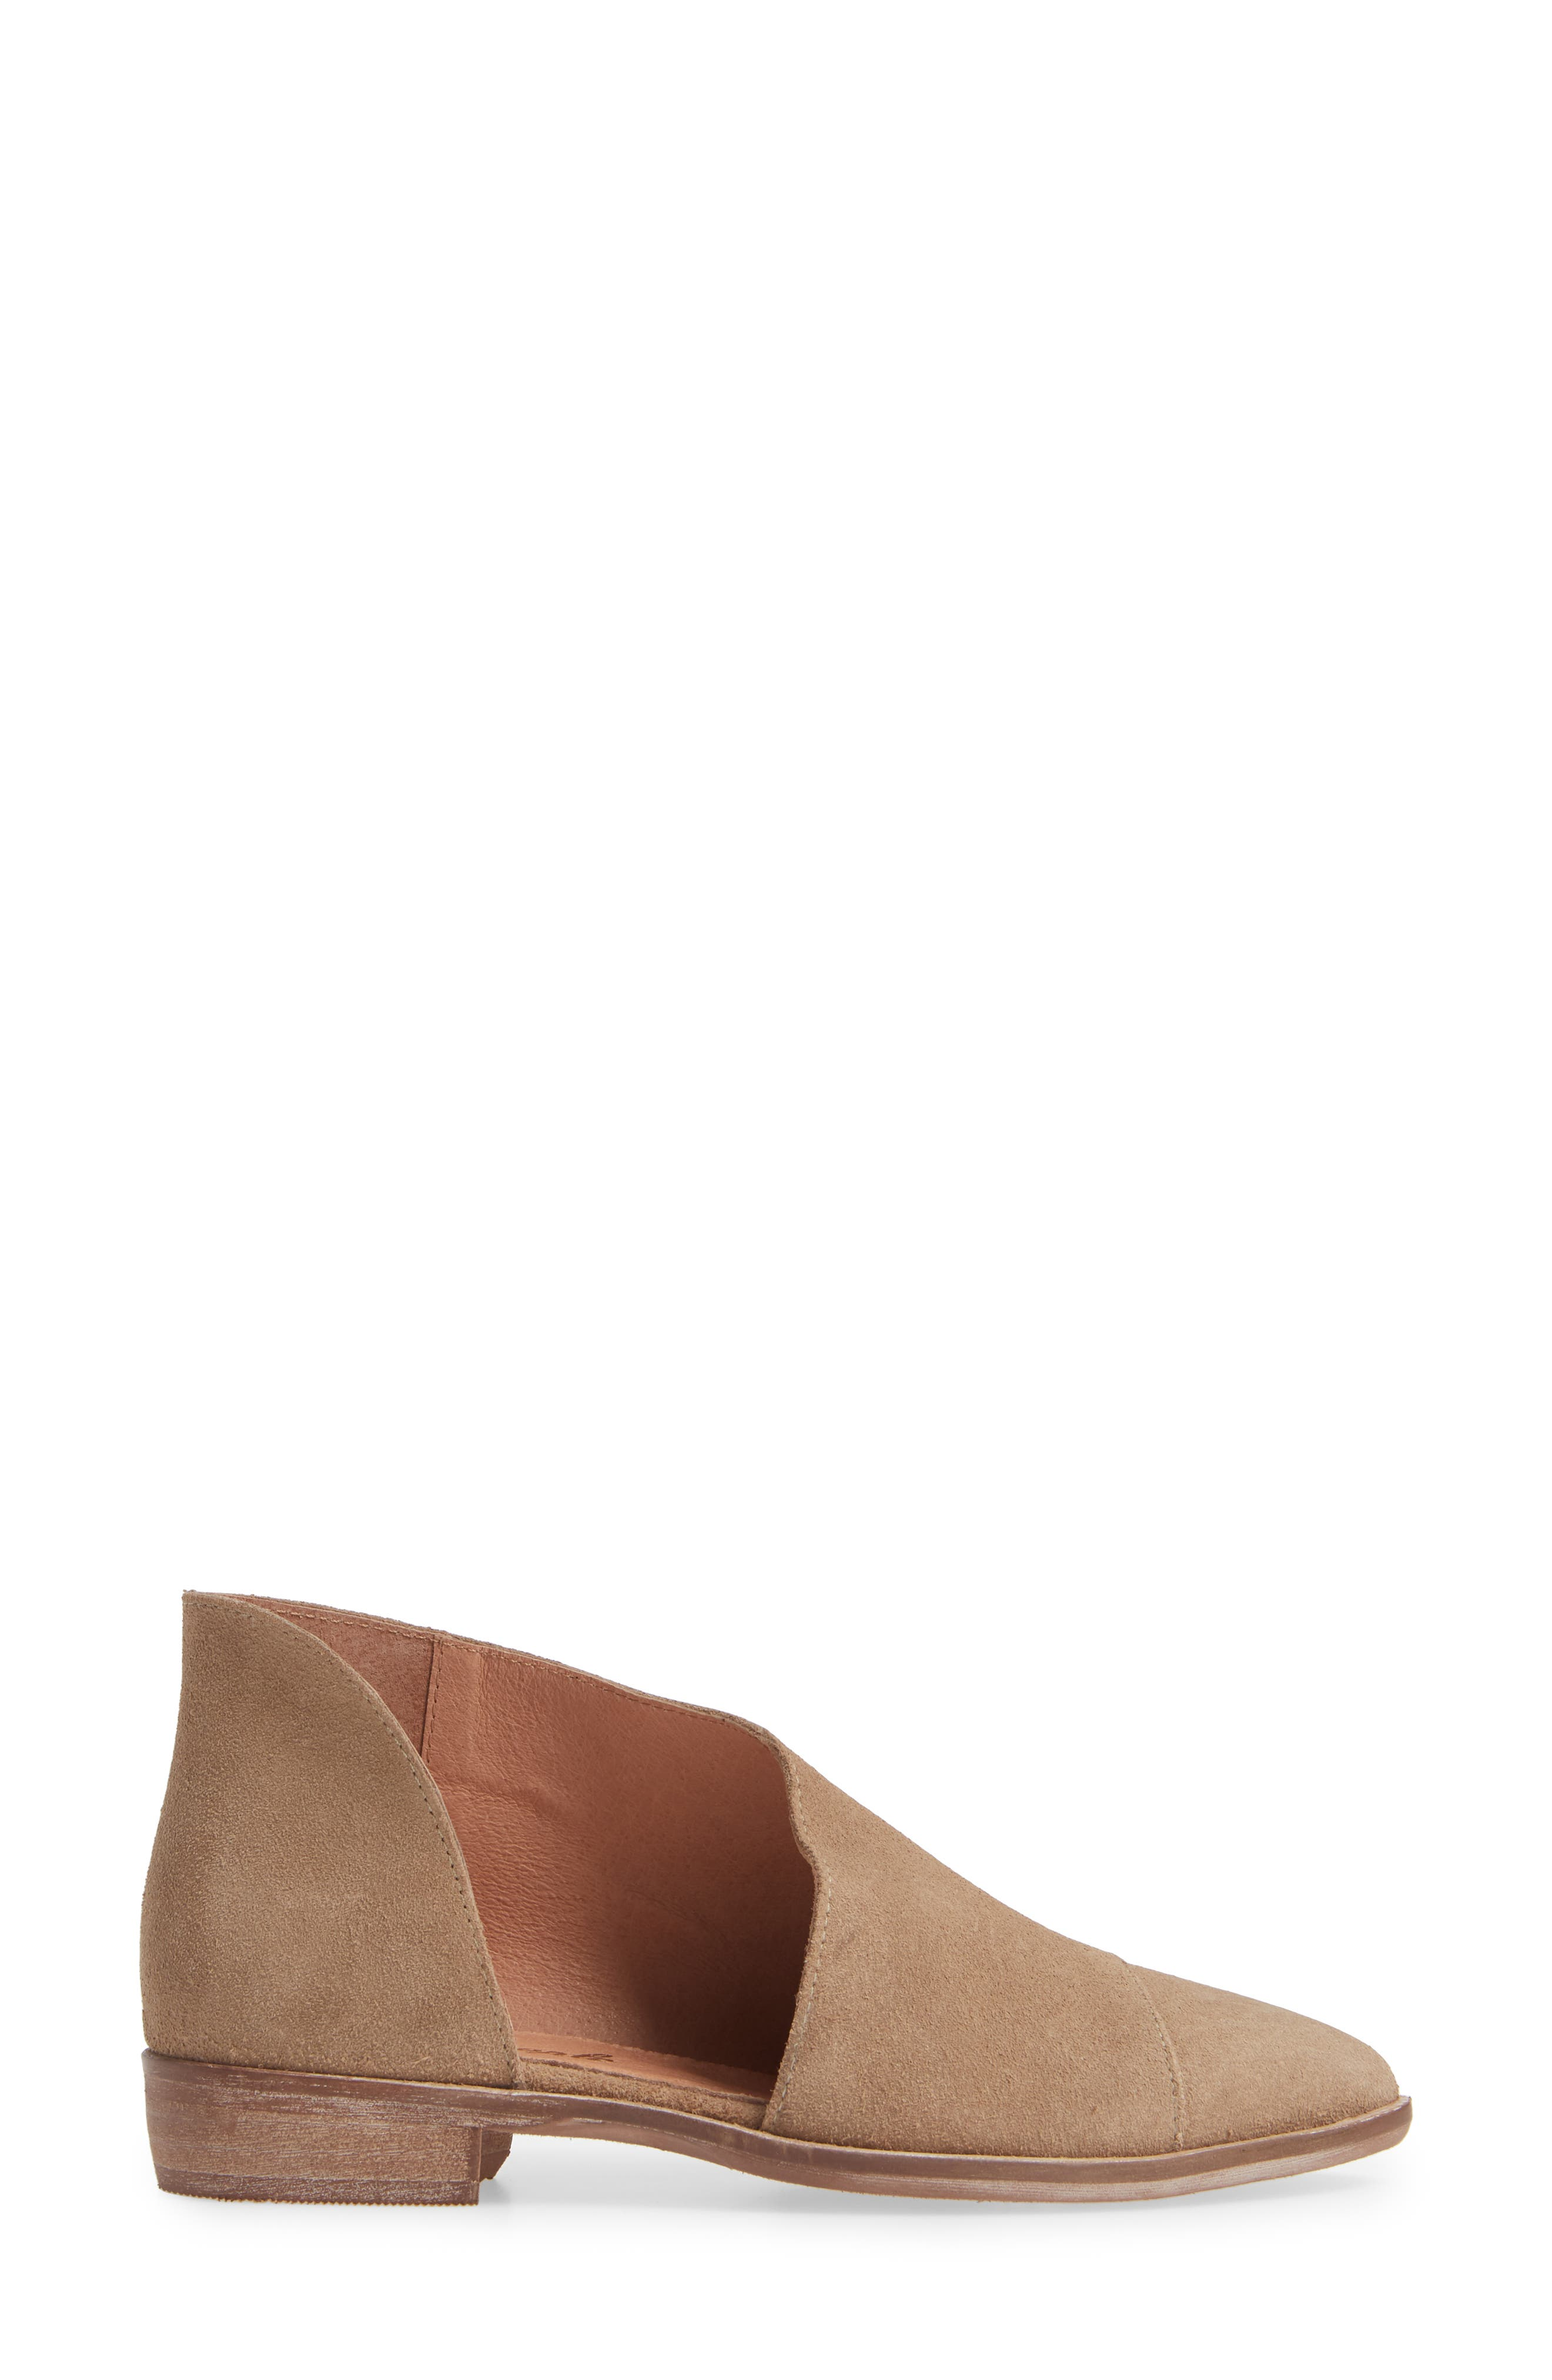 'Royale' Pointy Toe Flat,                             Alternate thumbnail 3, color,                             BEIGE SUEDE